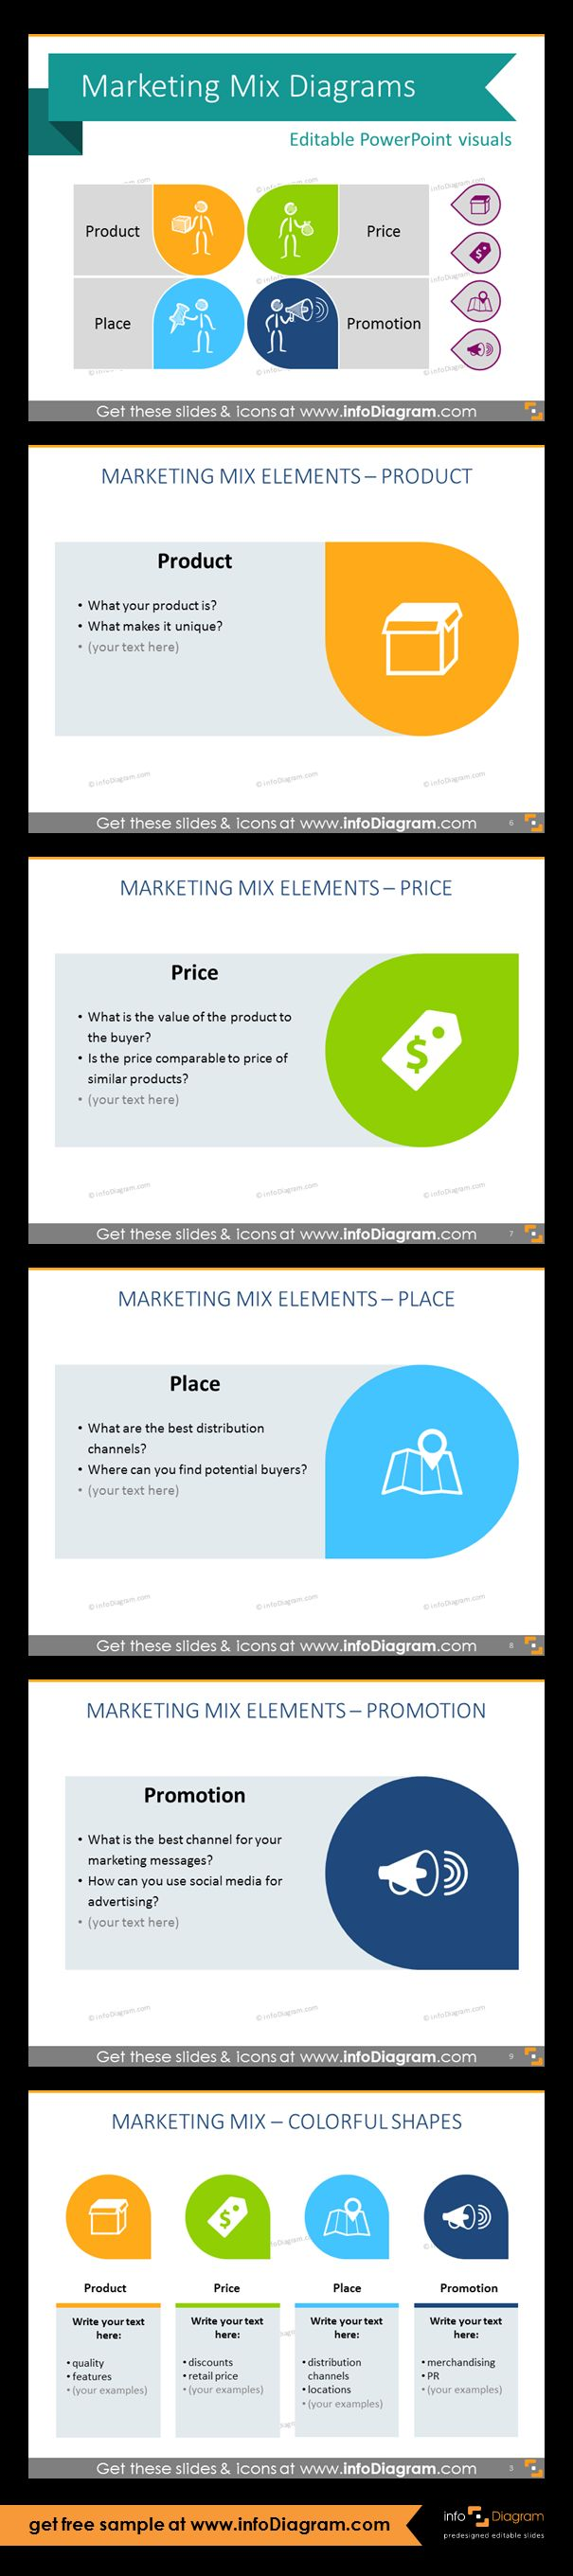 Marketing Mix Diagram Template. Detailed characteristic of each element with icons: product, price, place, promotion; Examples of questions to ask while characterizing each 4P element. 4P of marketing overview. Fully editable style. Size and colors easy to adjust using PowerPoint editor.